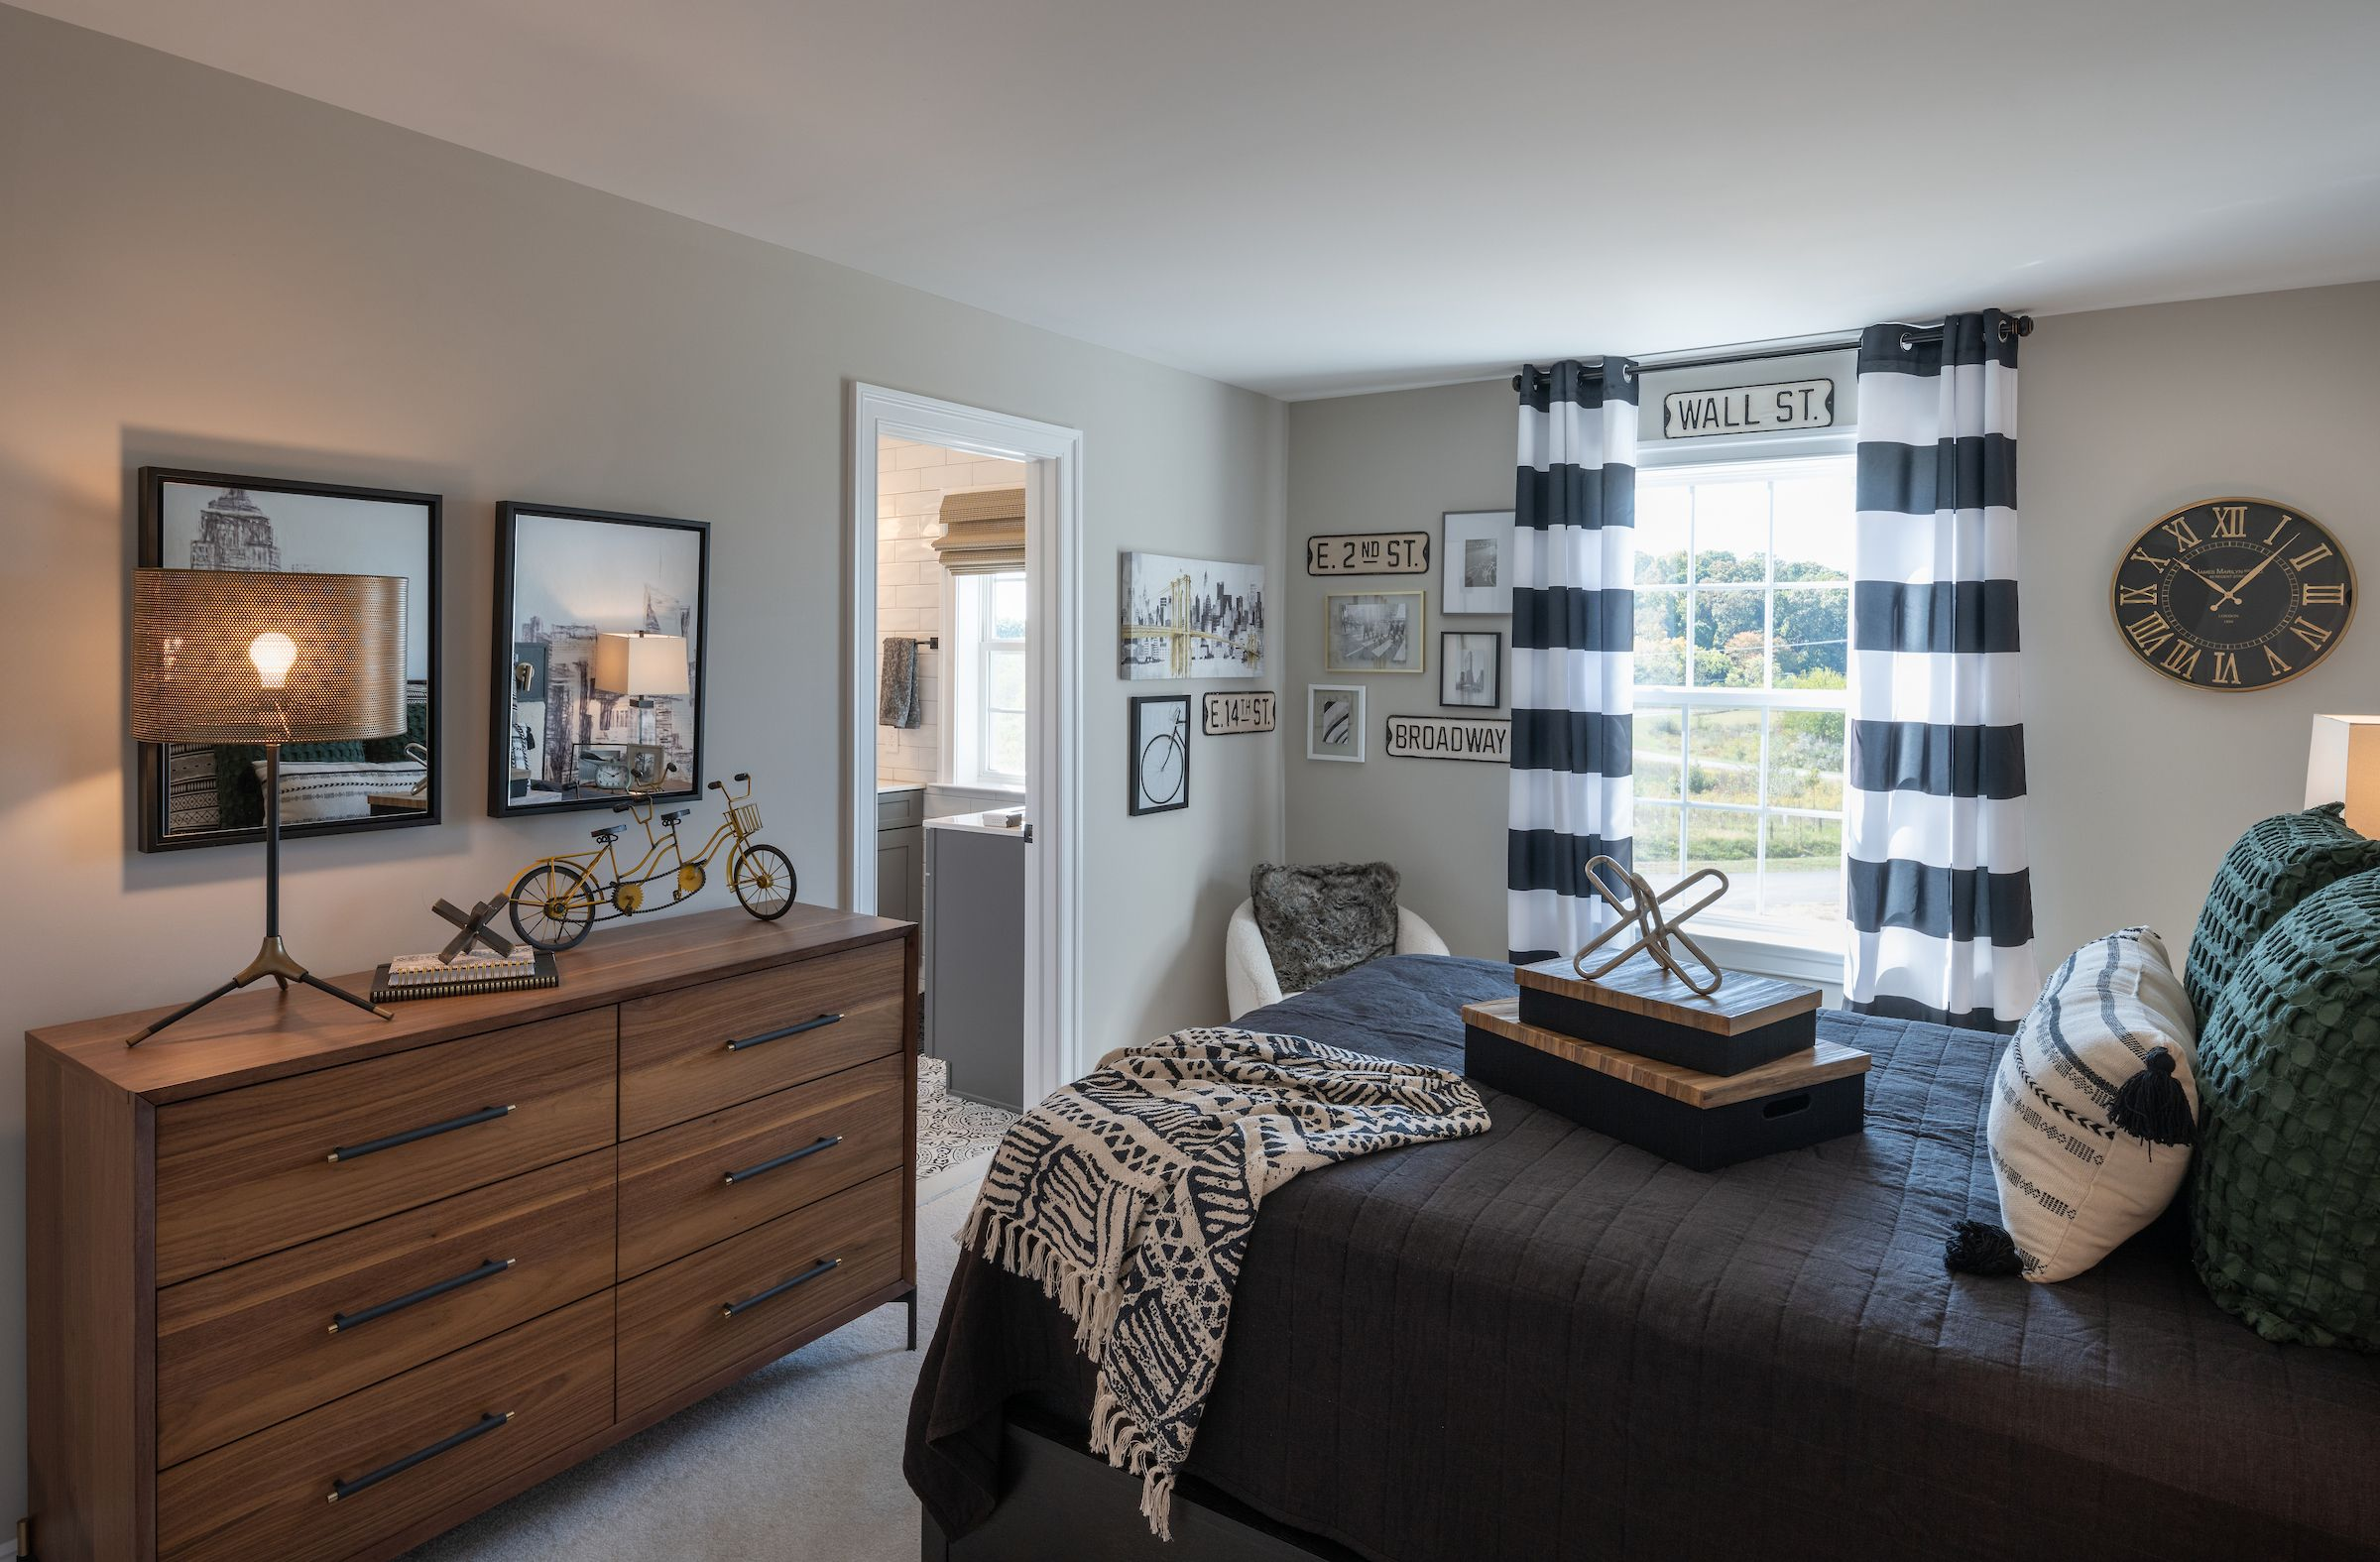 Bedroom featured in the Hawthorne Heritage By Keystone Custom Homes in Lancaster, PA